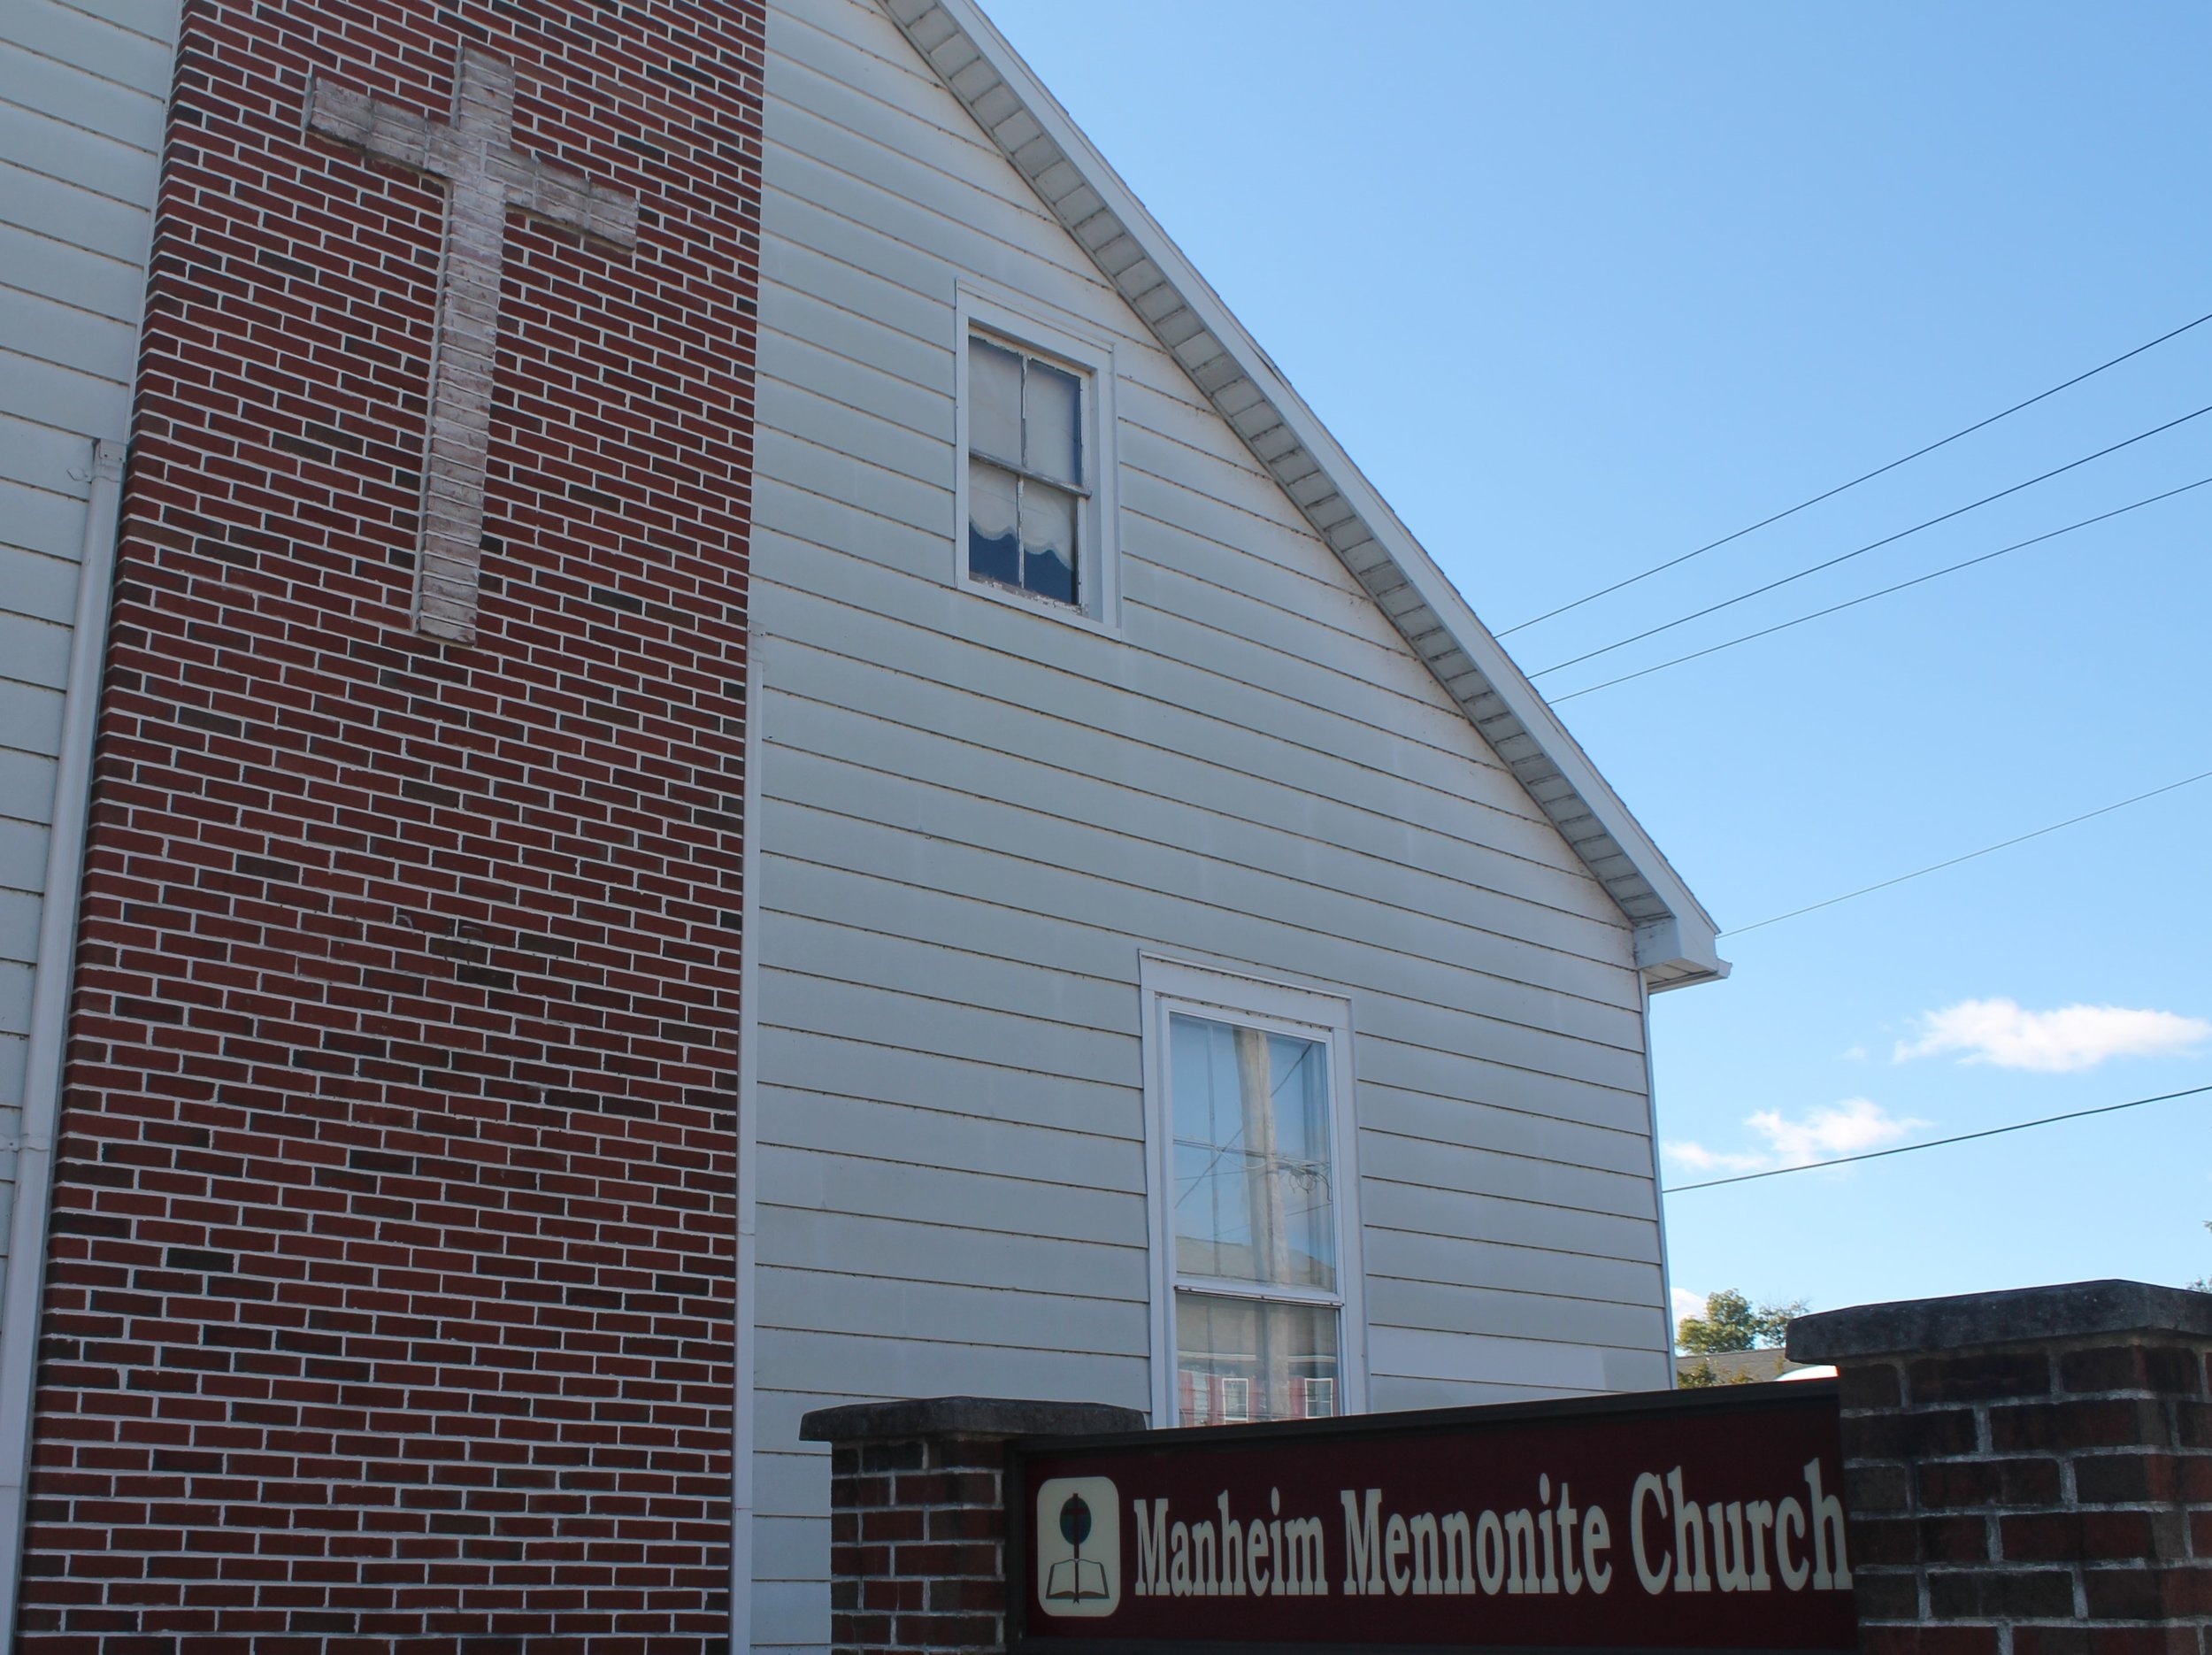 Manheim Mennonite Church